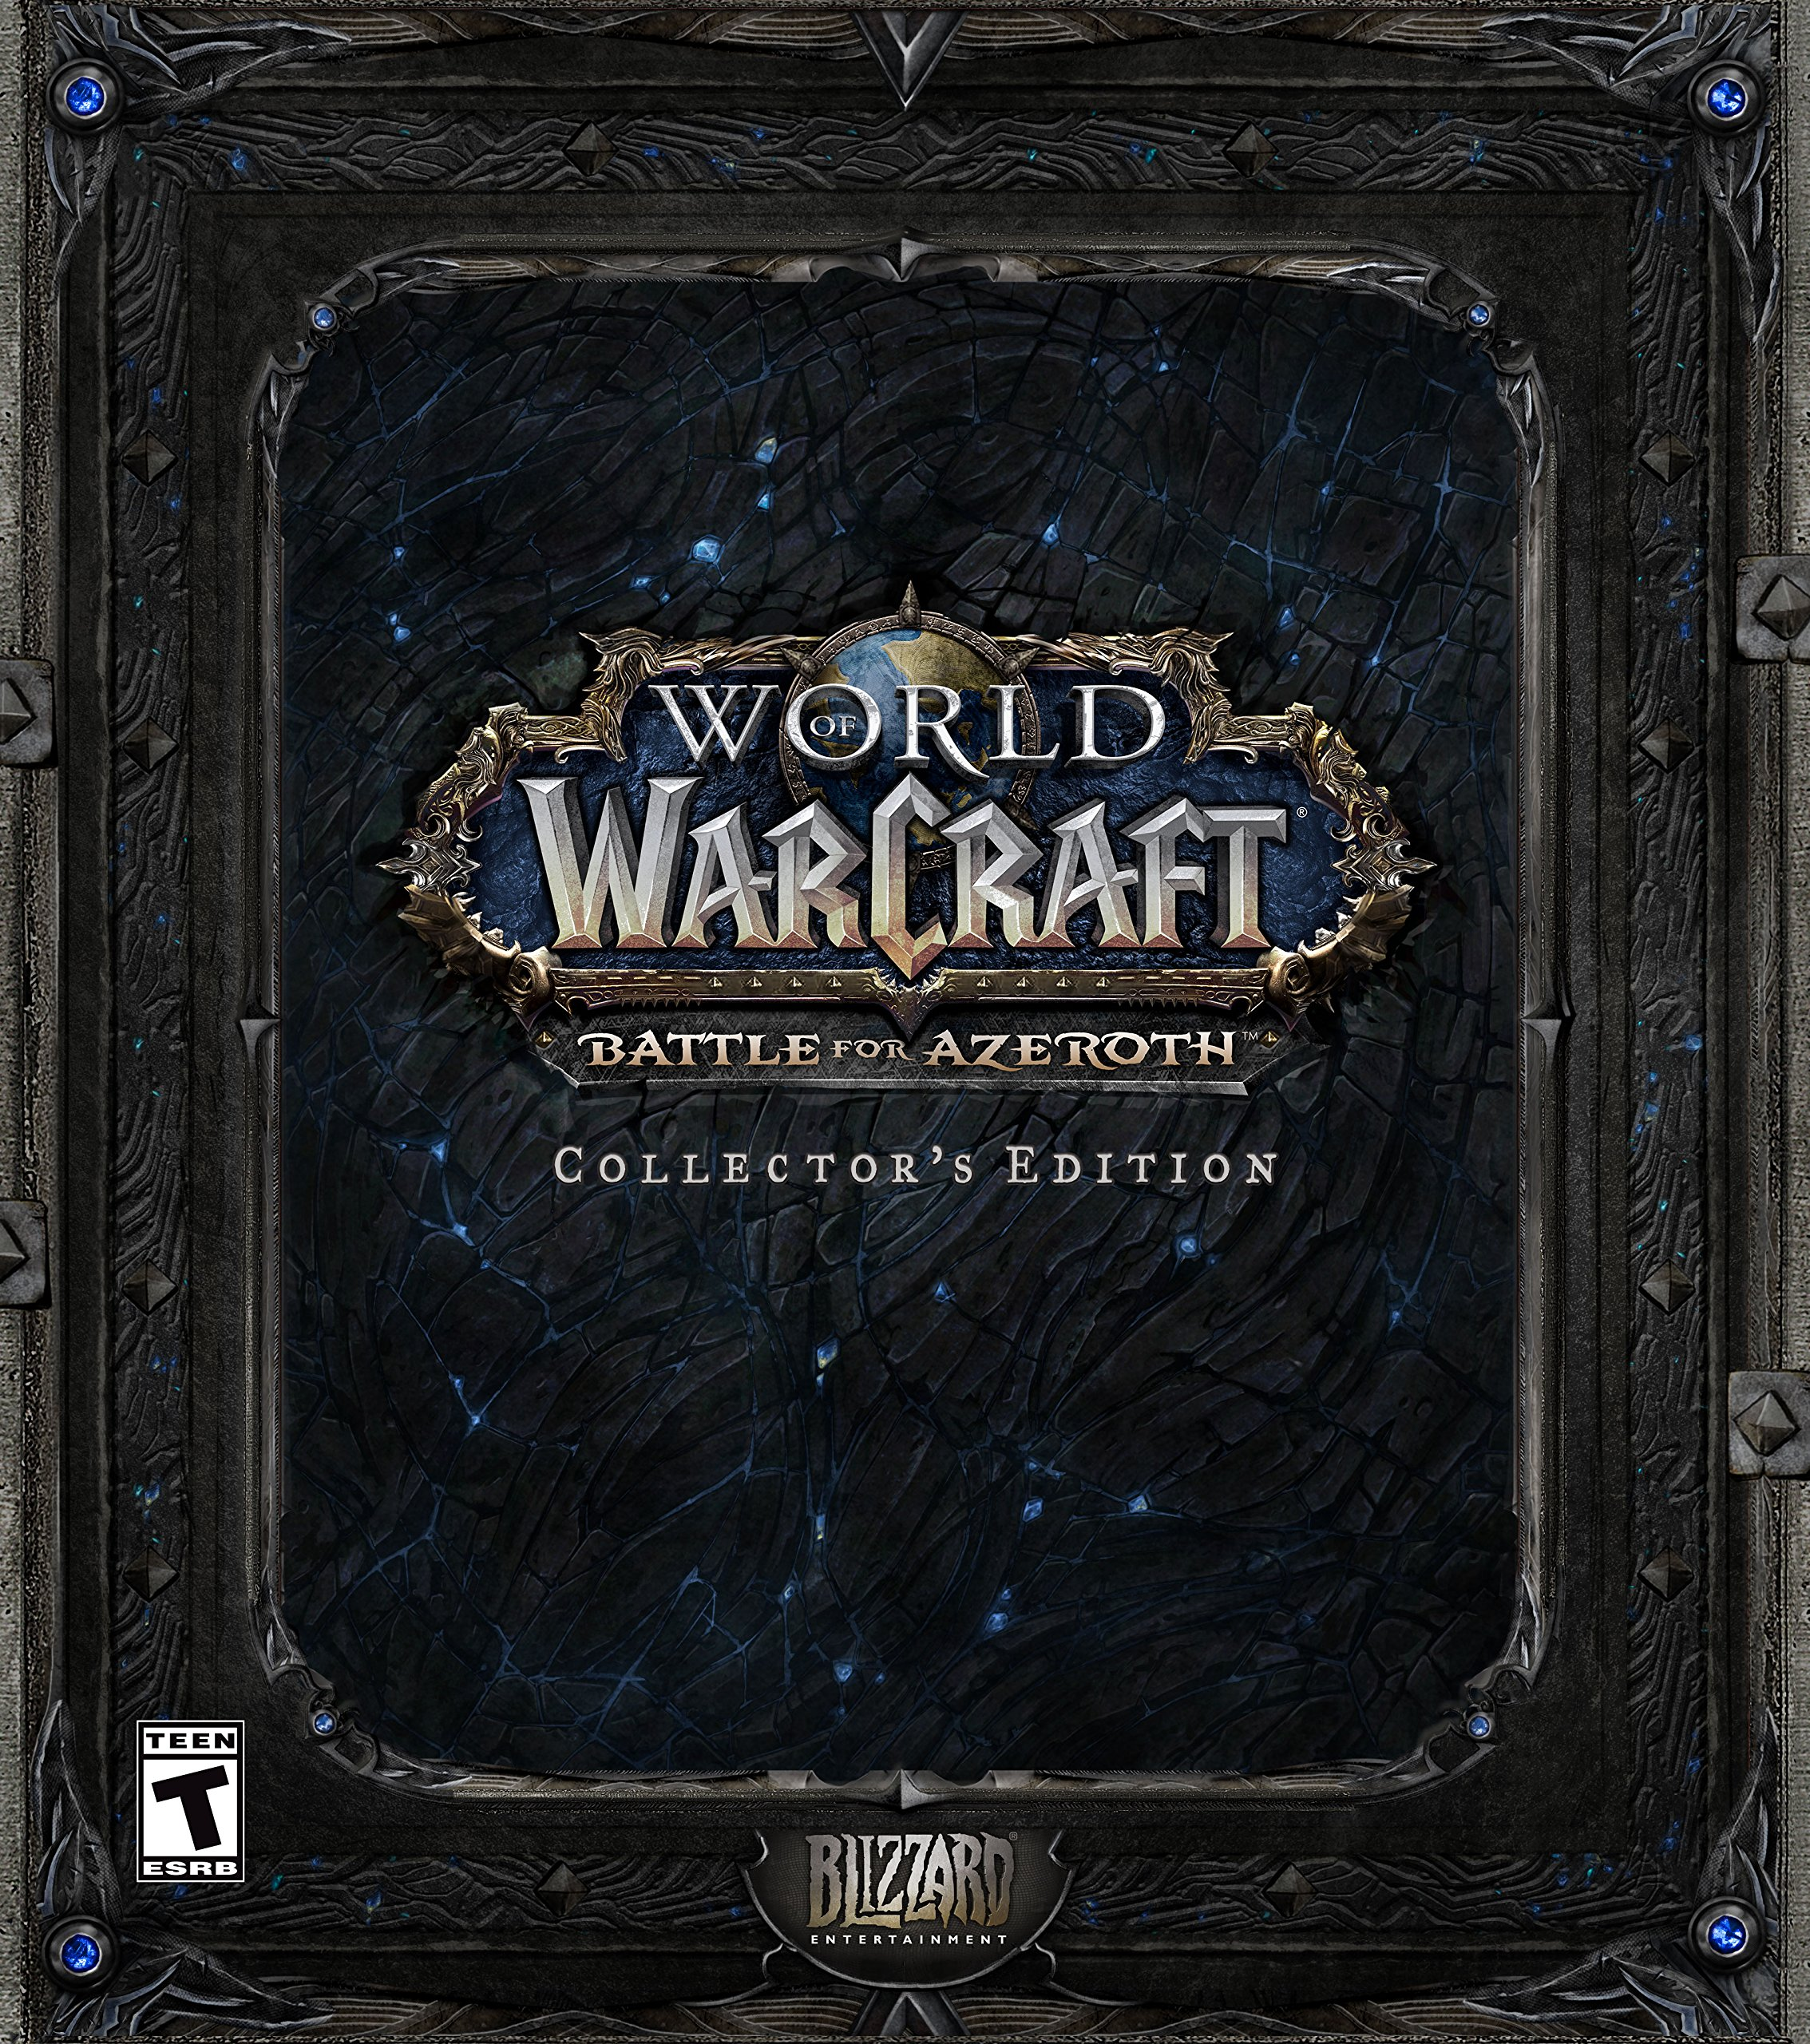 World of Warcraft Battle for Azeroth Collector's Edition - PC by Blizzard Entertainment